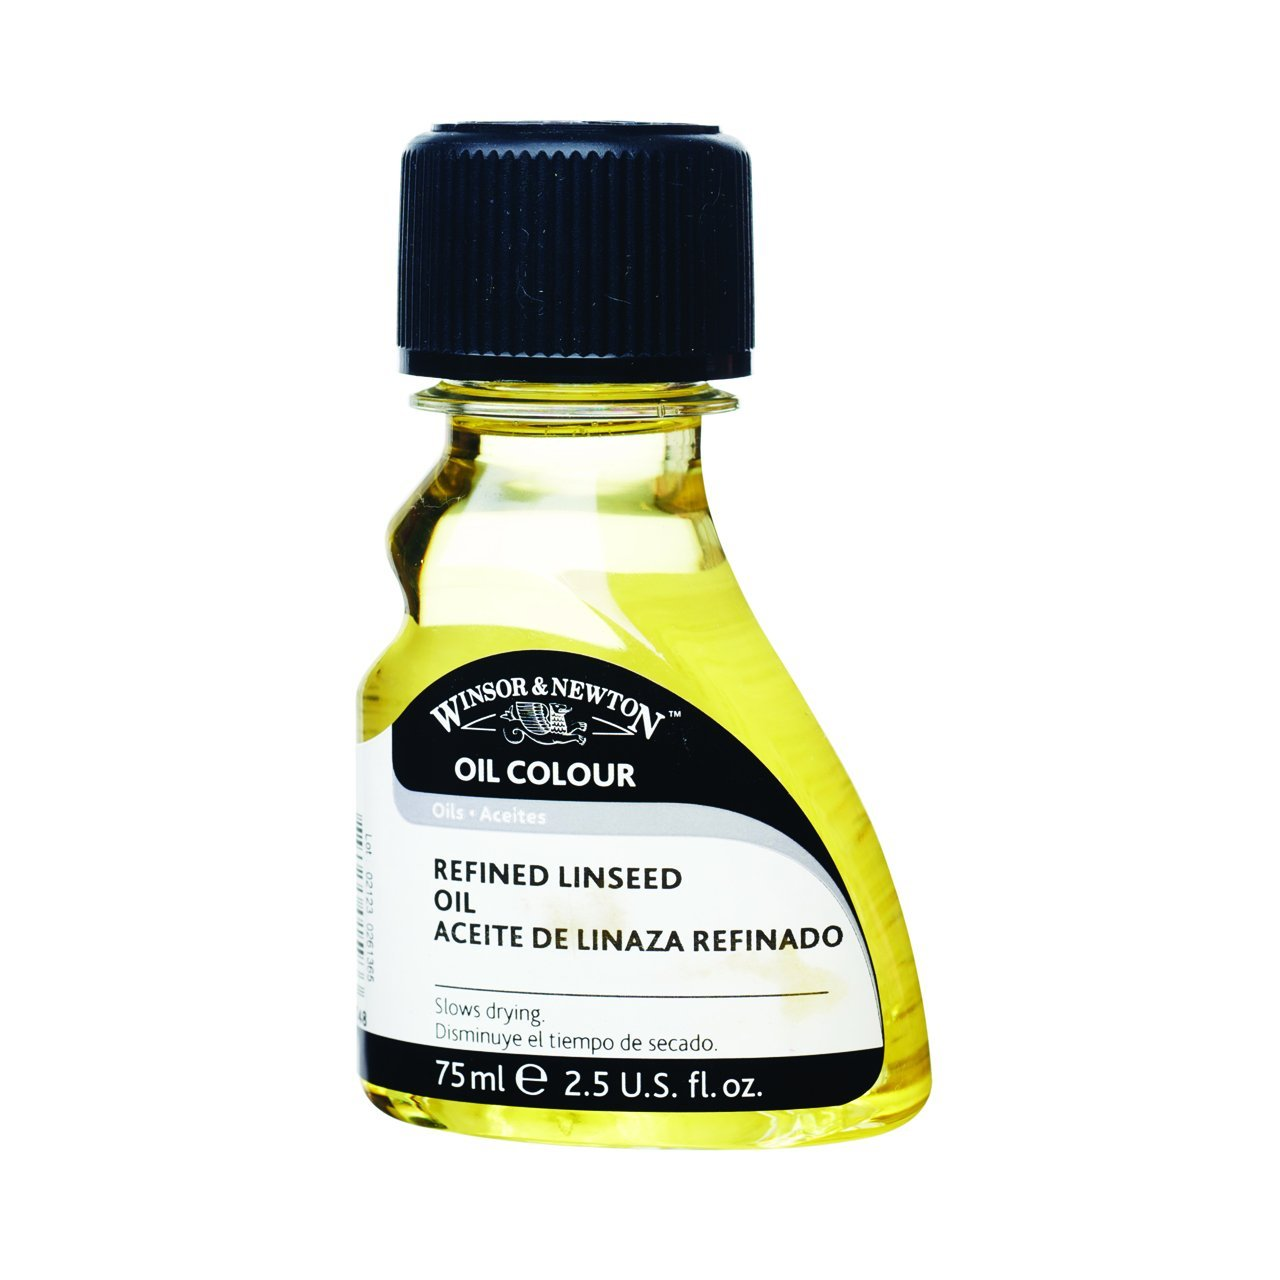 Winsor & Newton Refined Linseed Oil, 75ml